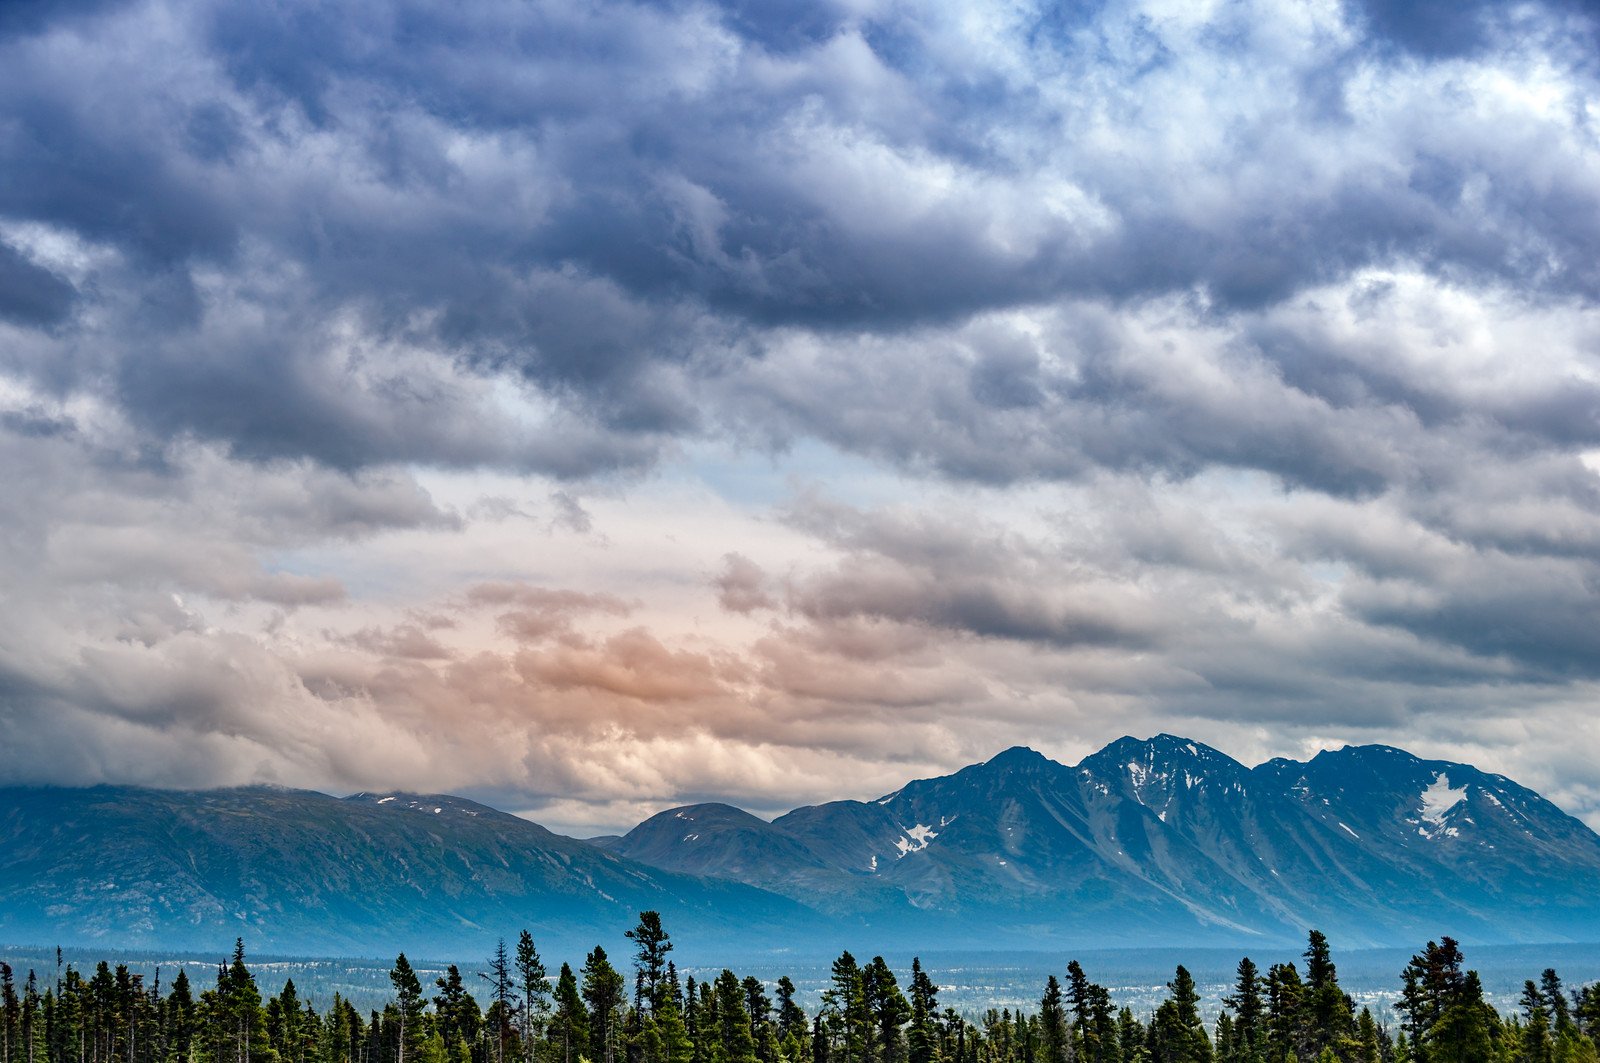 Clouds make for a moody image. <br /> #thepursuit to #createmore<br /> .<br /> .<br /> #nature #travel #explore #earth #landscape #picoftheday #adventure #alaska #fall #autumn #mountains #clouds